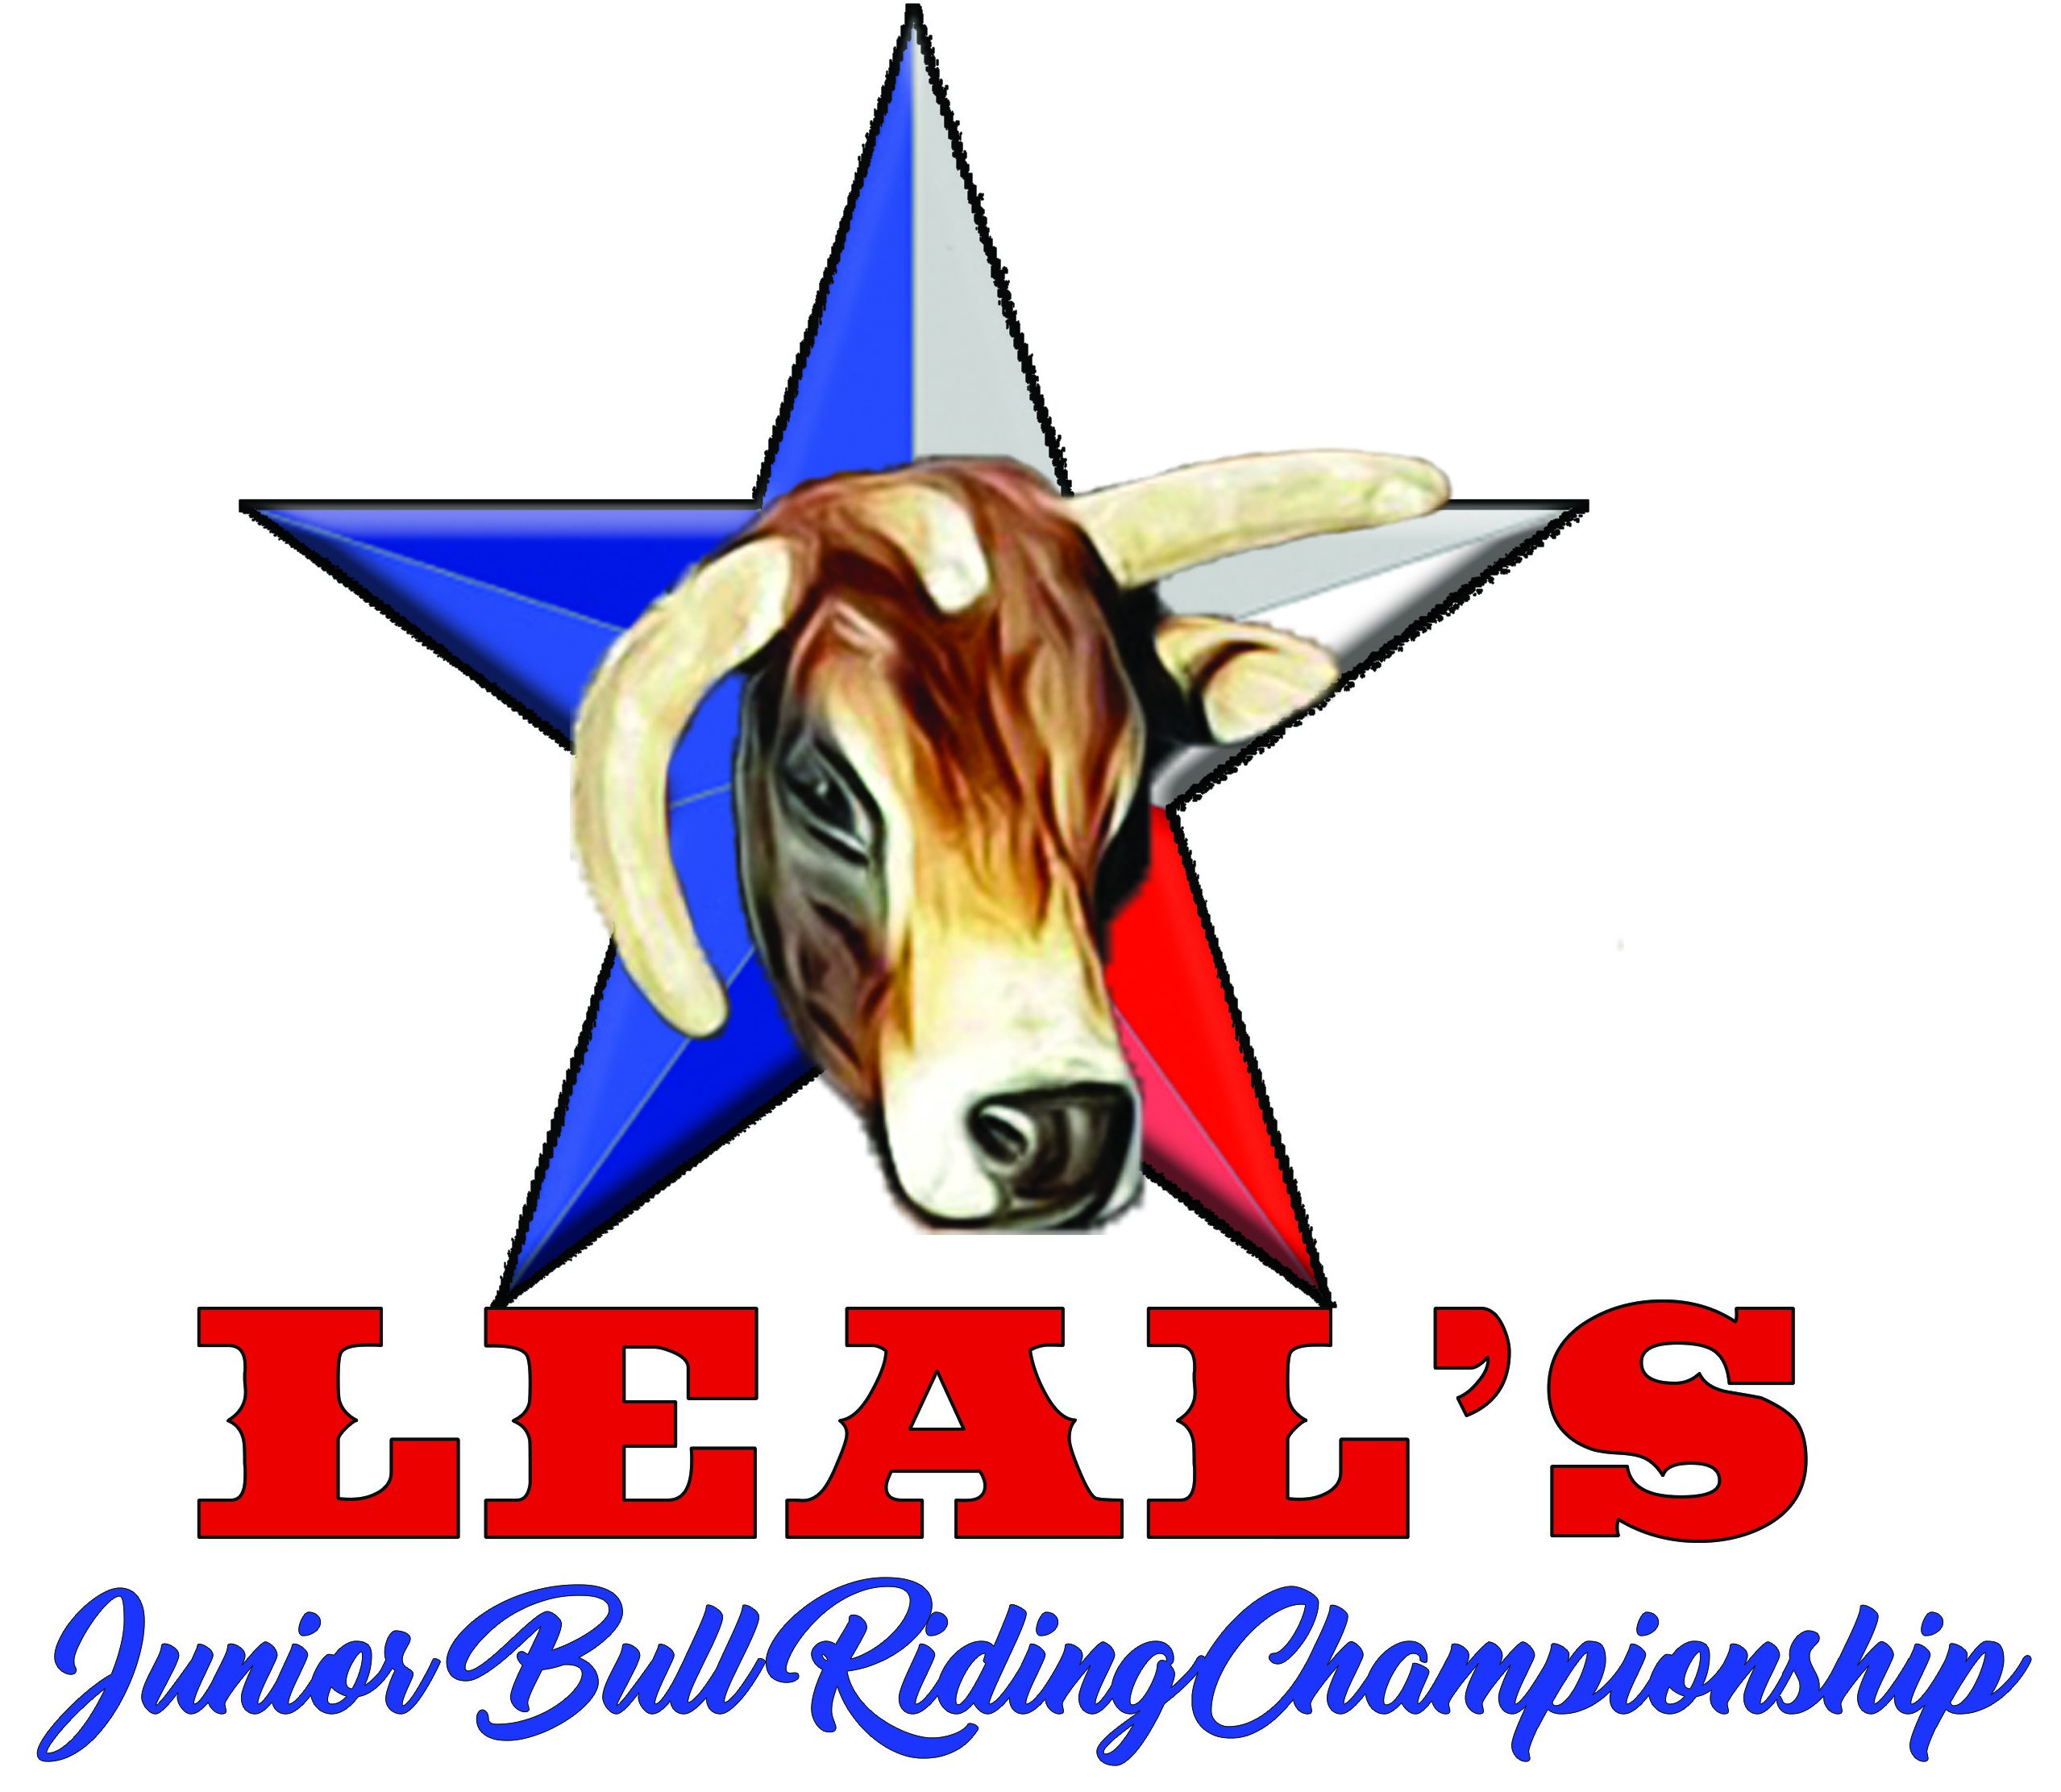 Leal's Junior Bull Riding